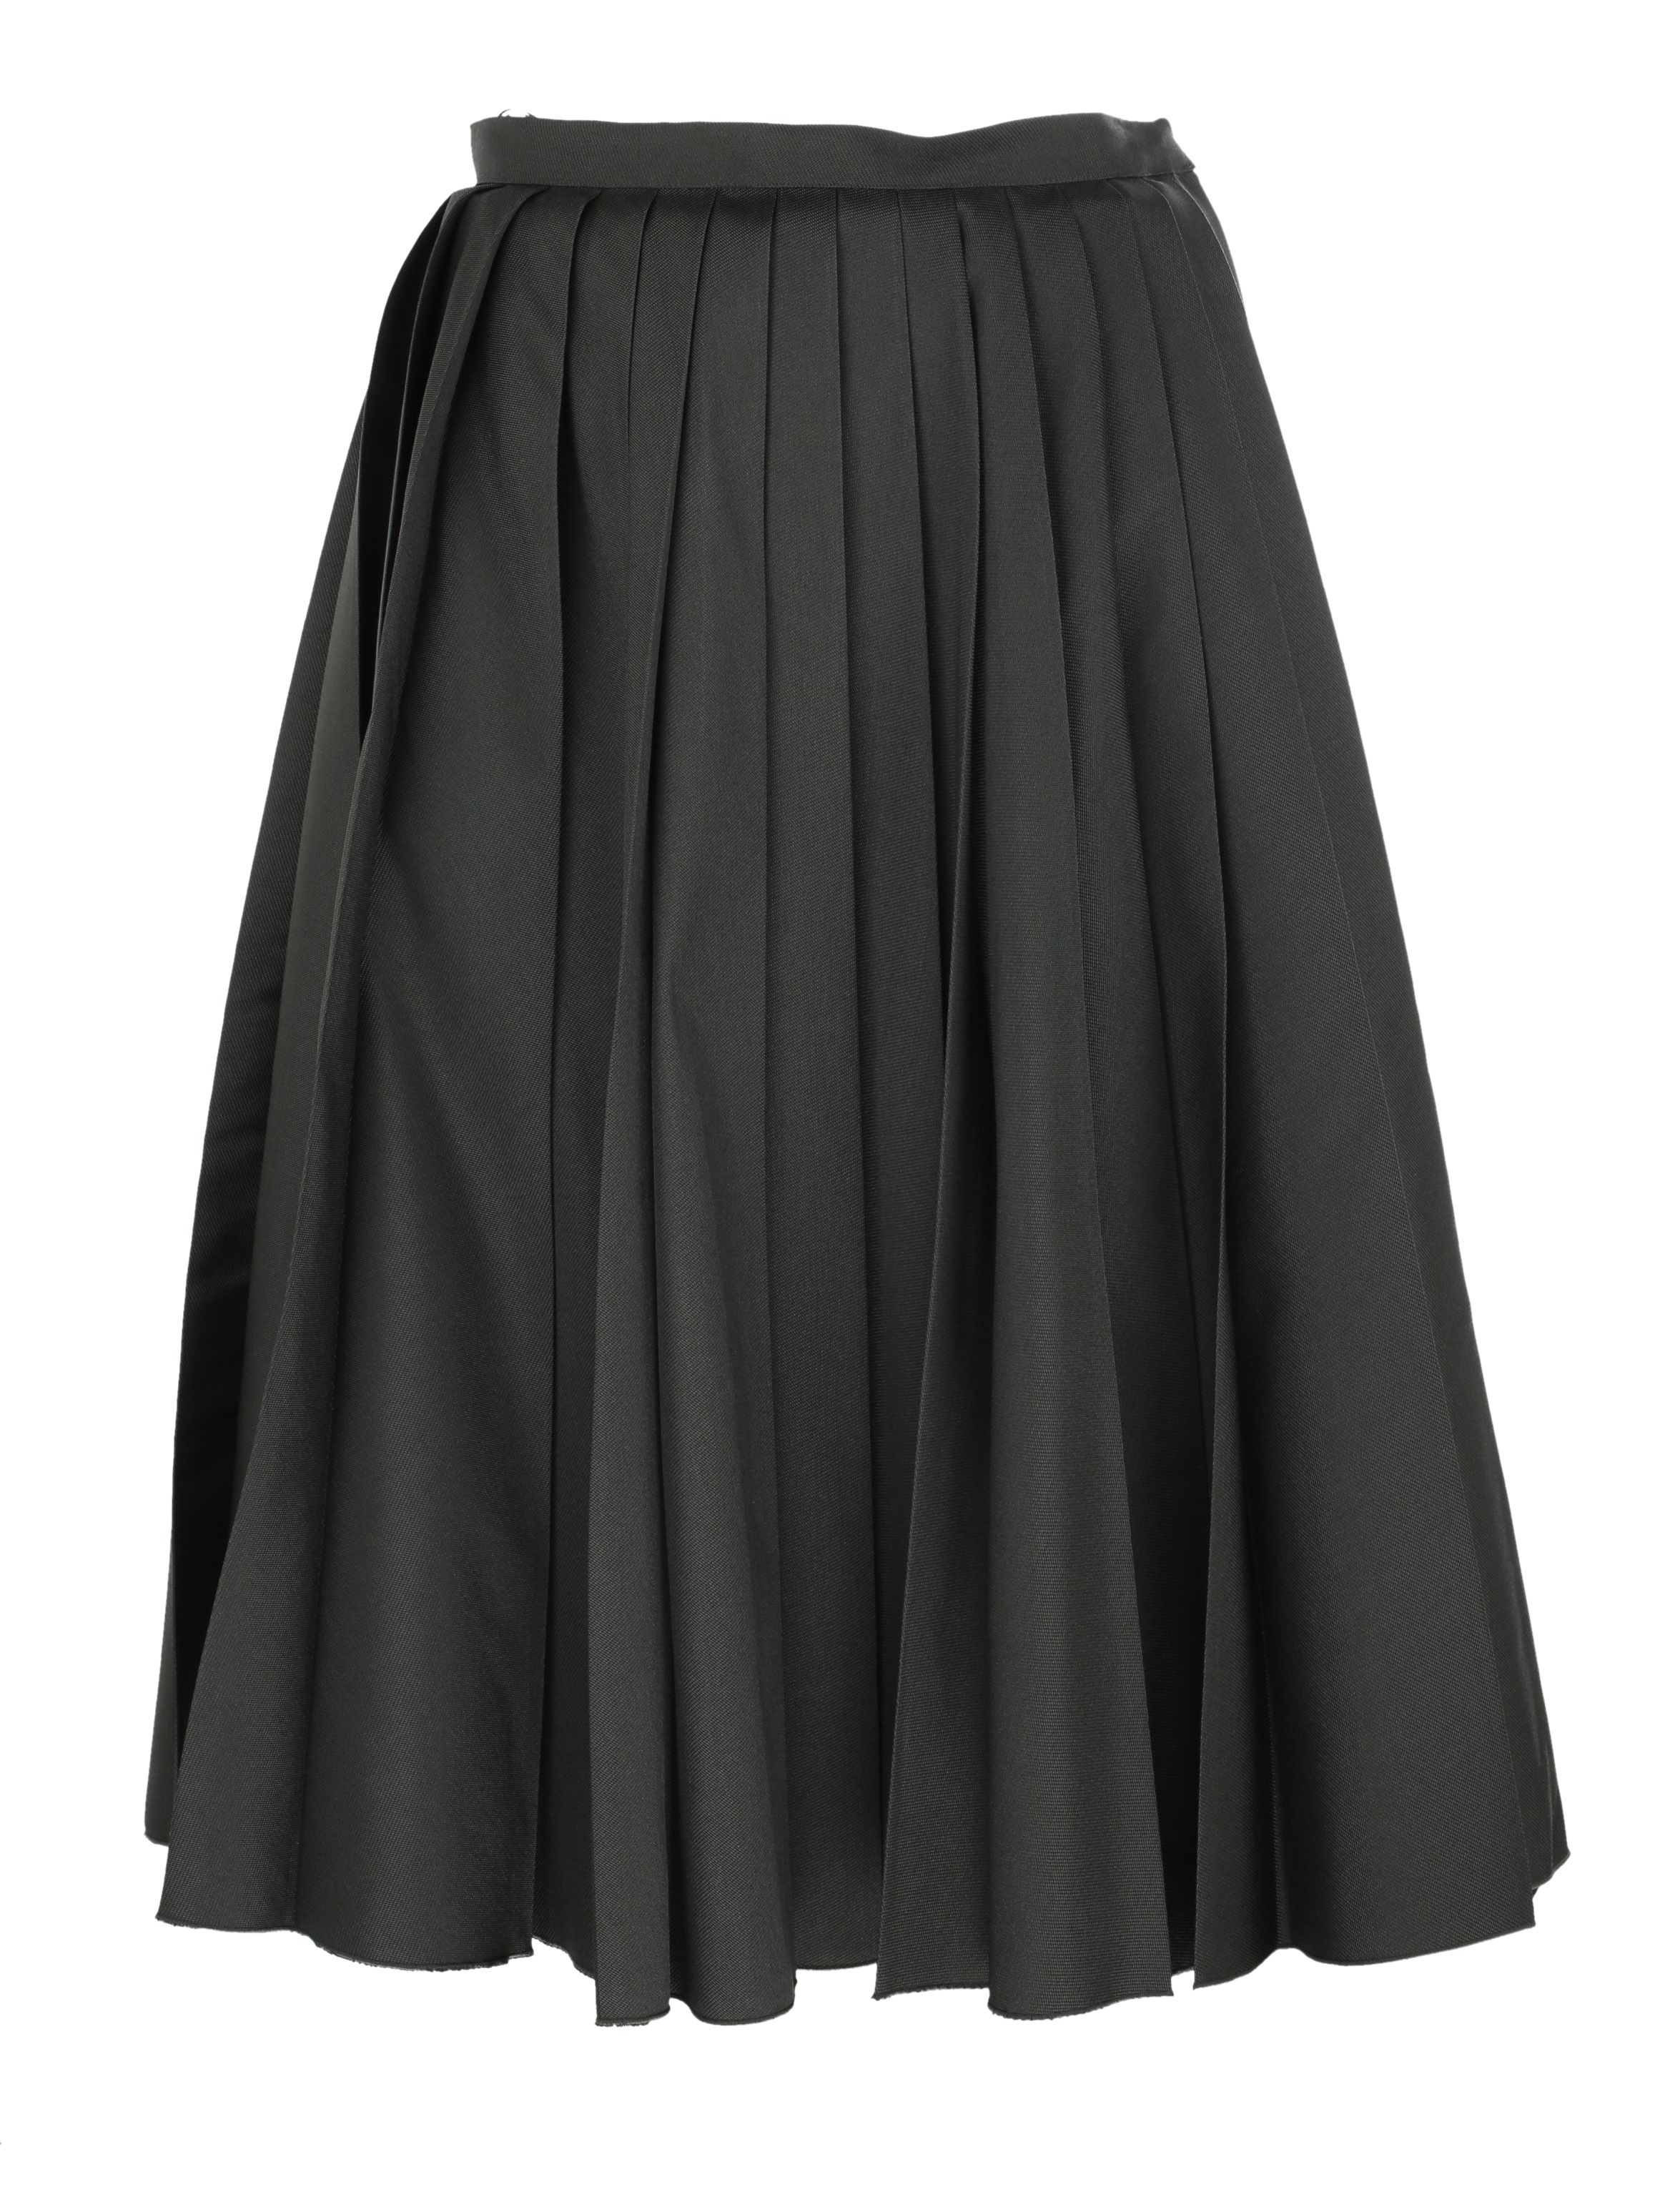 N.21 No21 Pleated Skirt